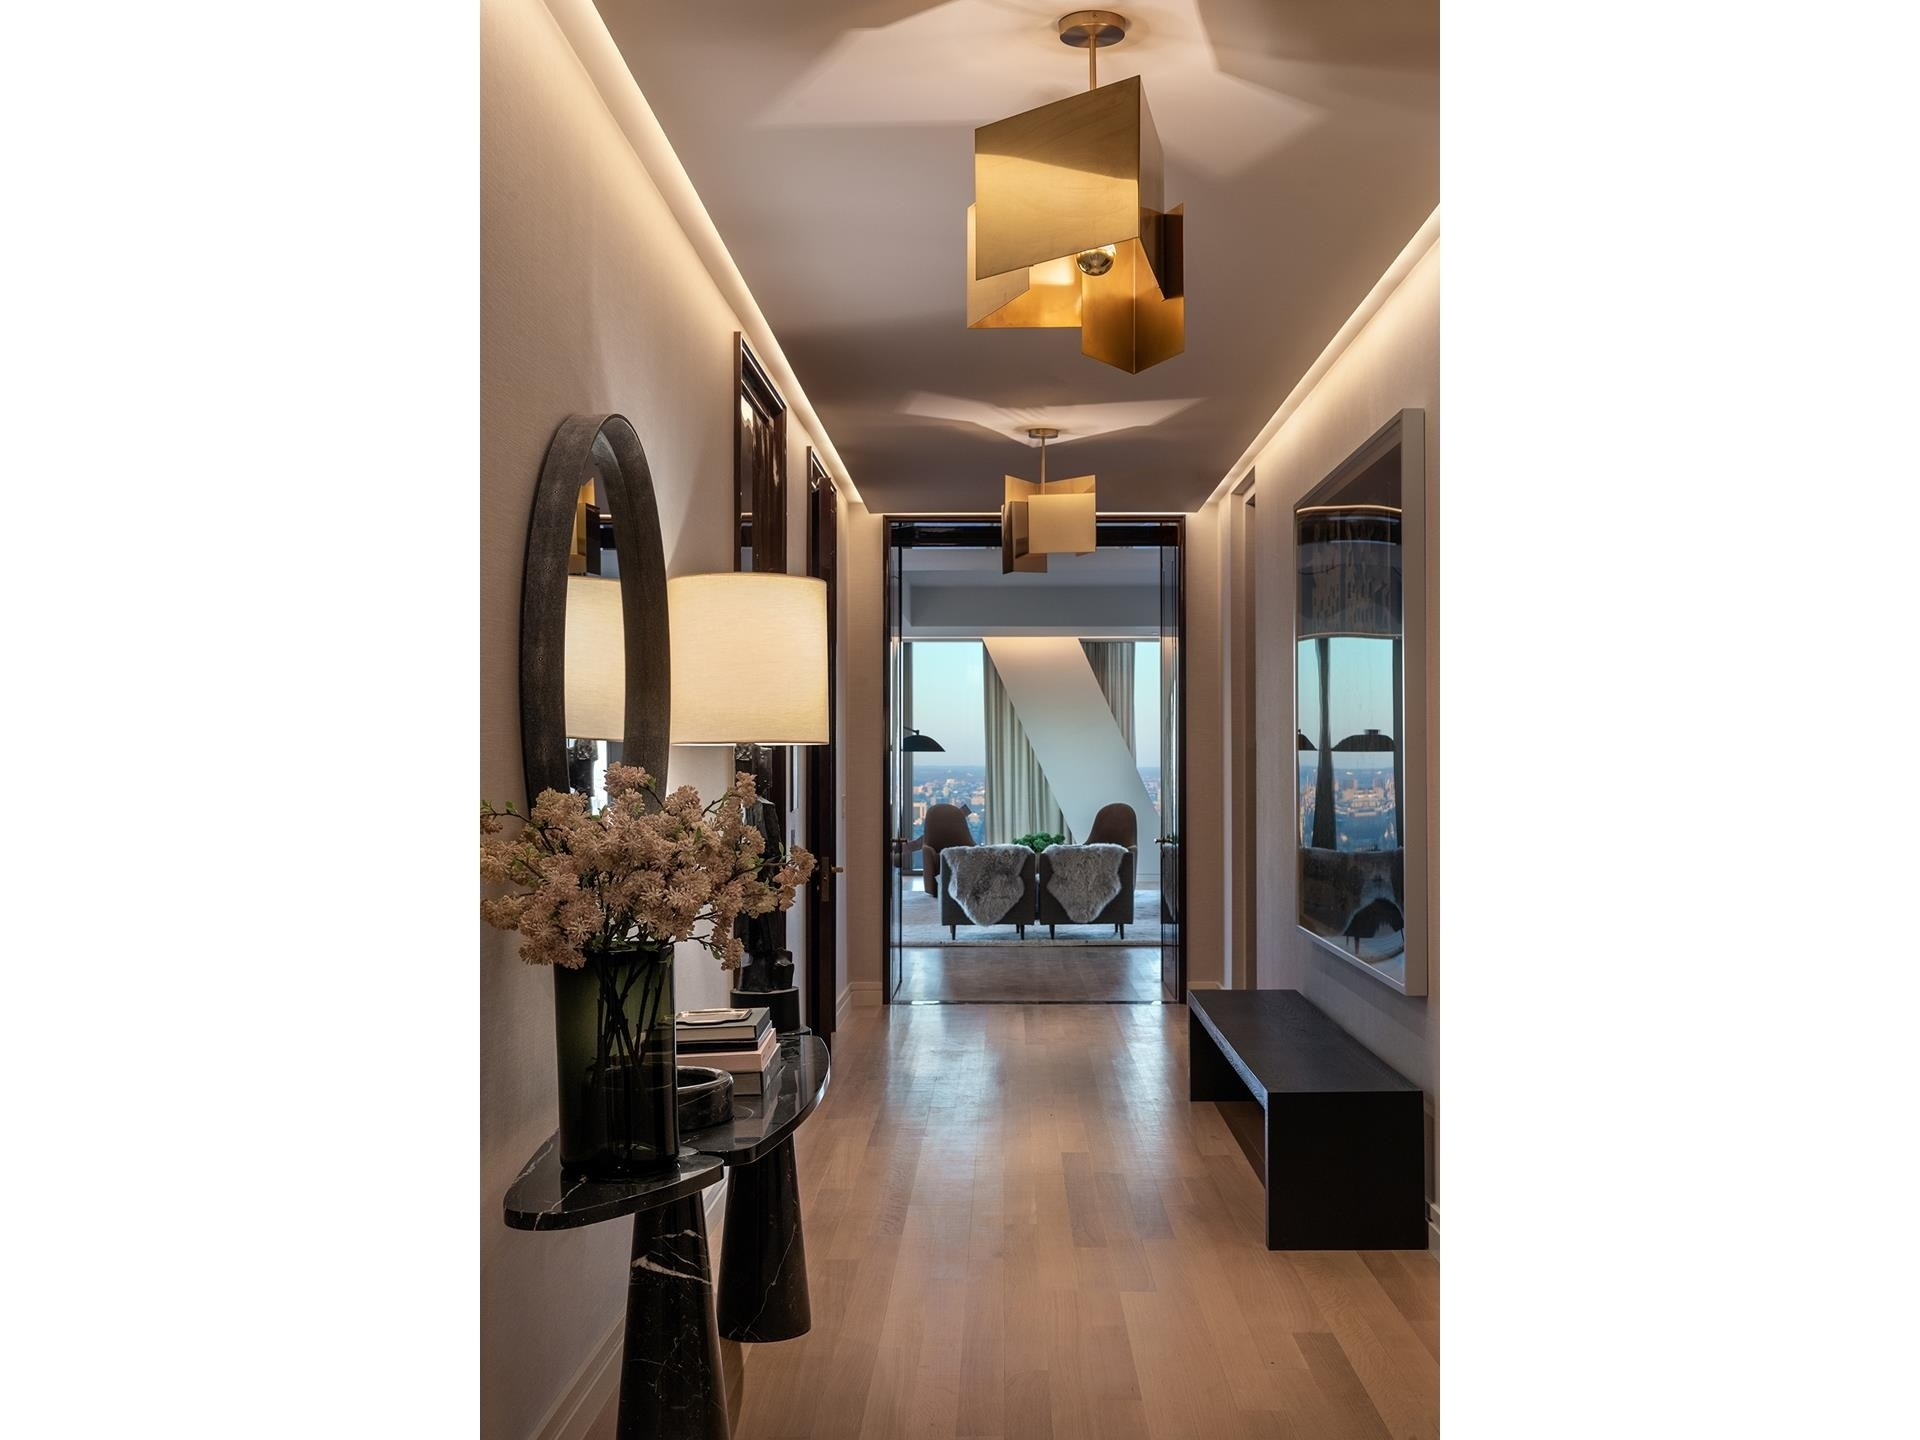 Condominium for Sale at 53W53, 53 53RD ST W, 64 Midtown West, New York, NY 10019